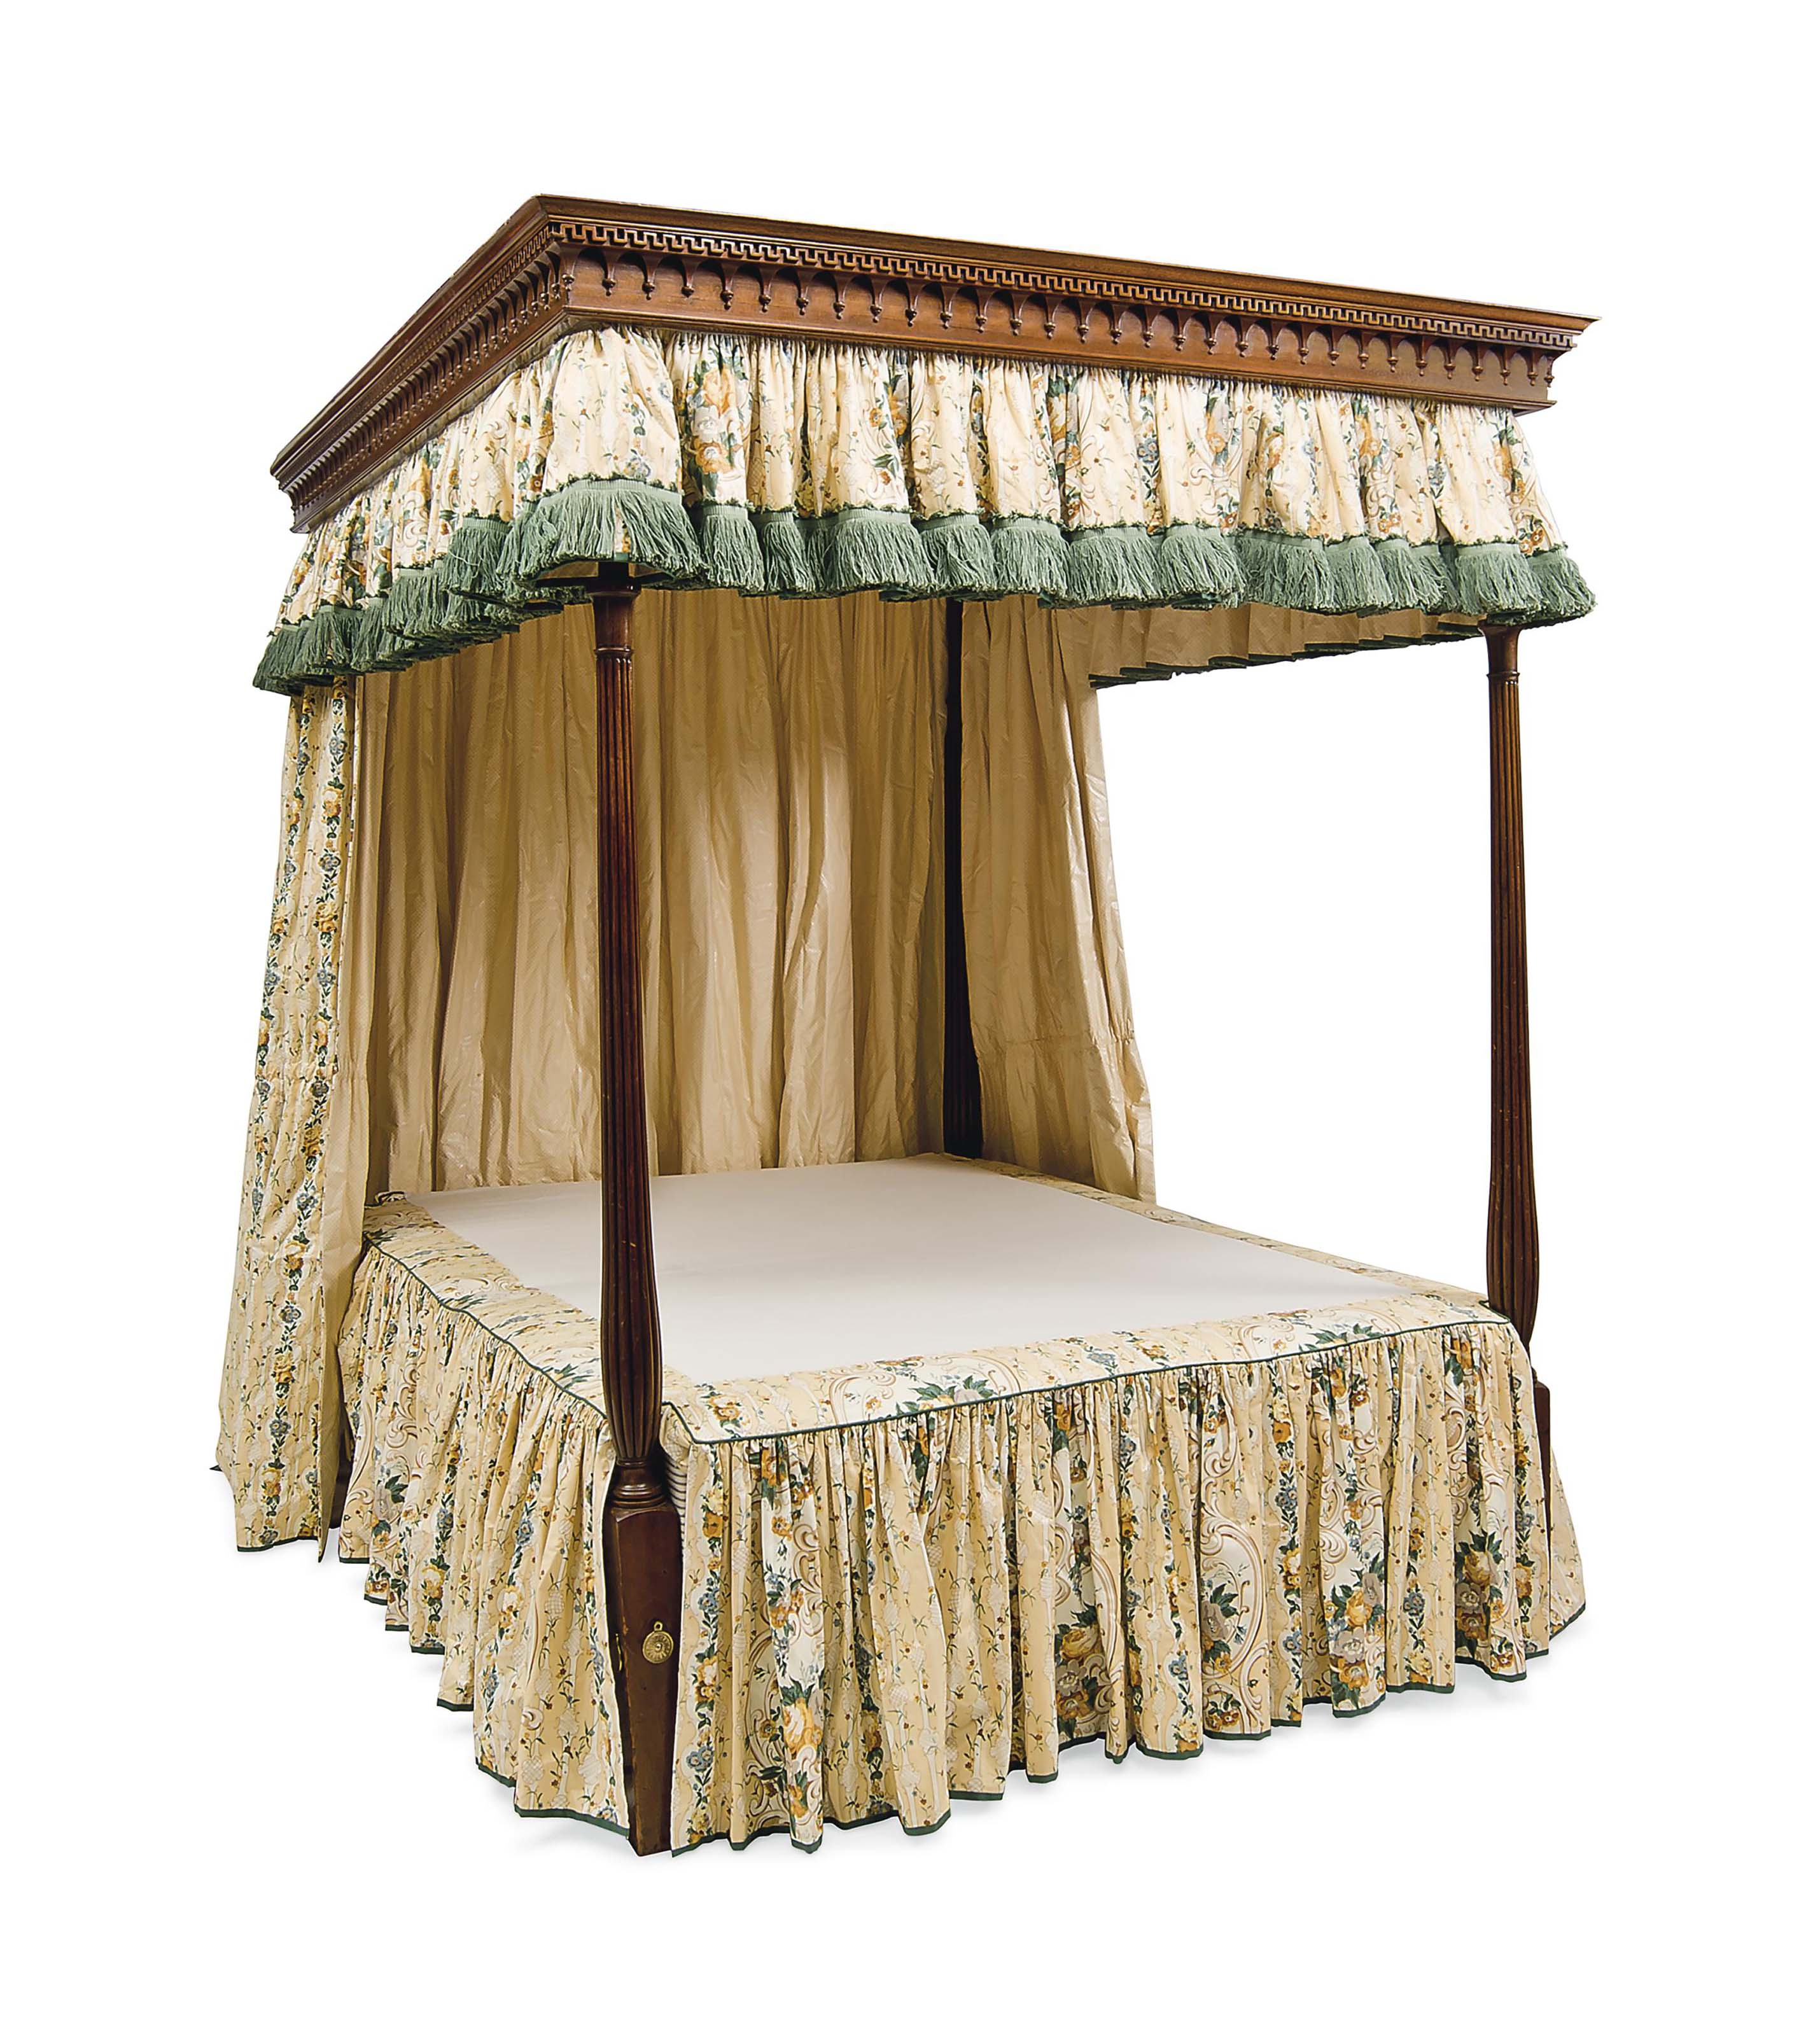 A GEORGE III STYLE MAHOGANY TESTER BED